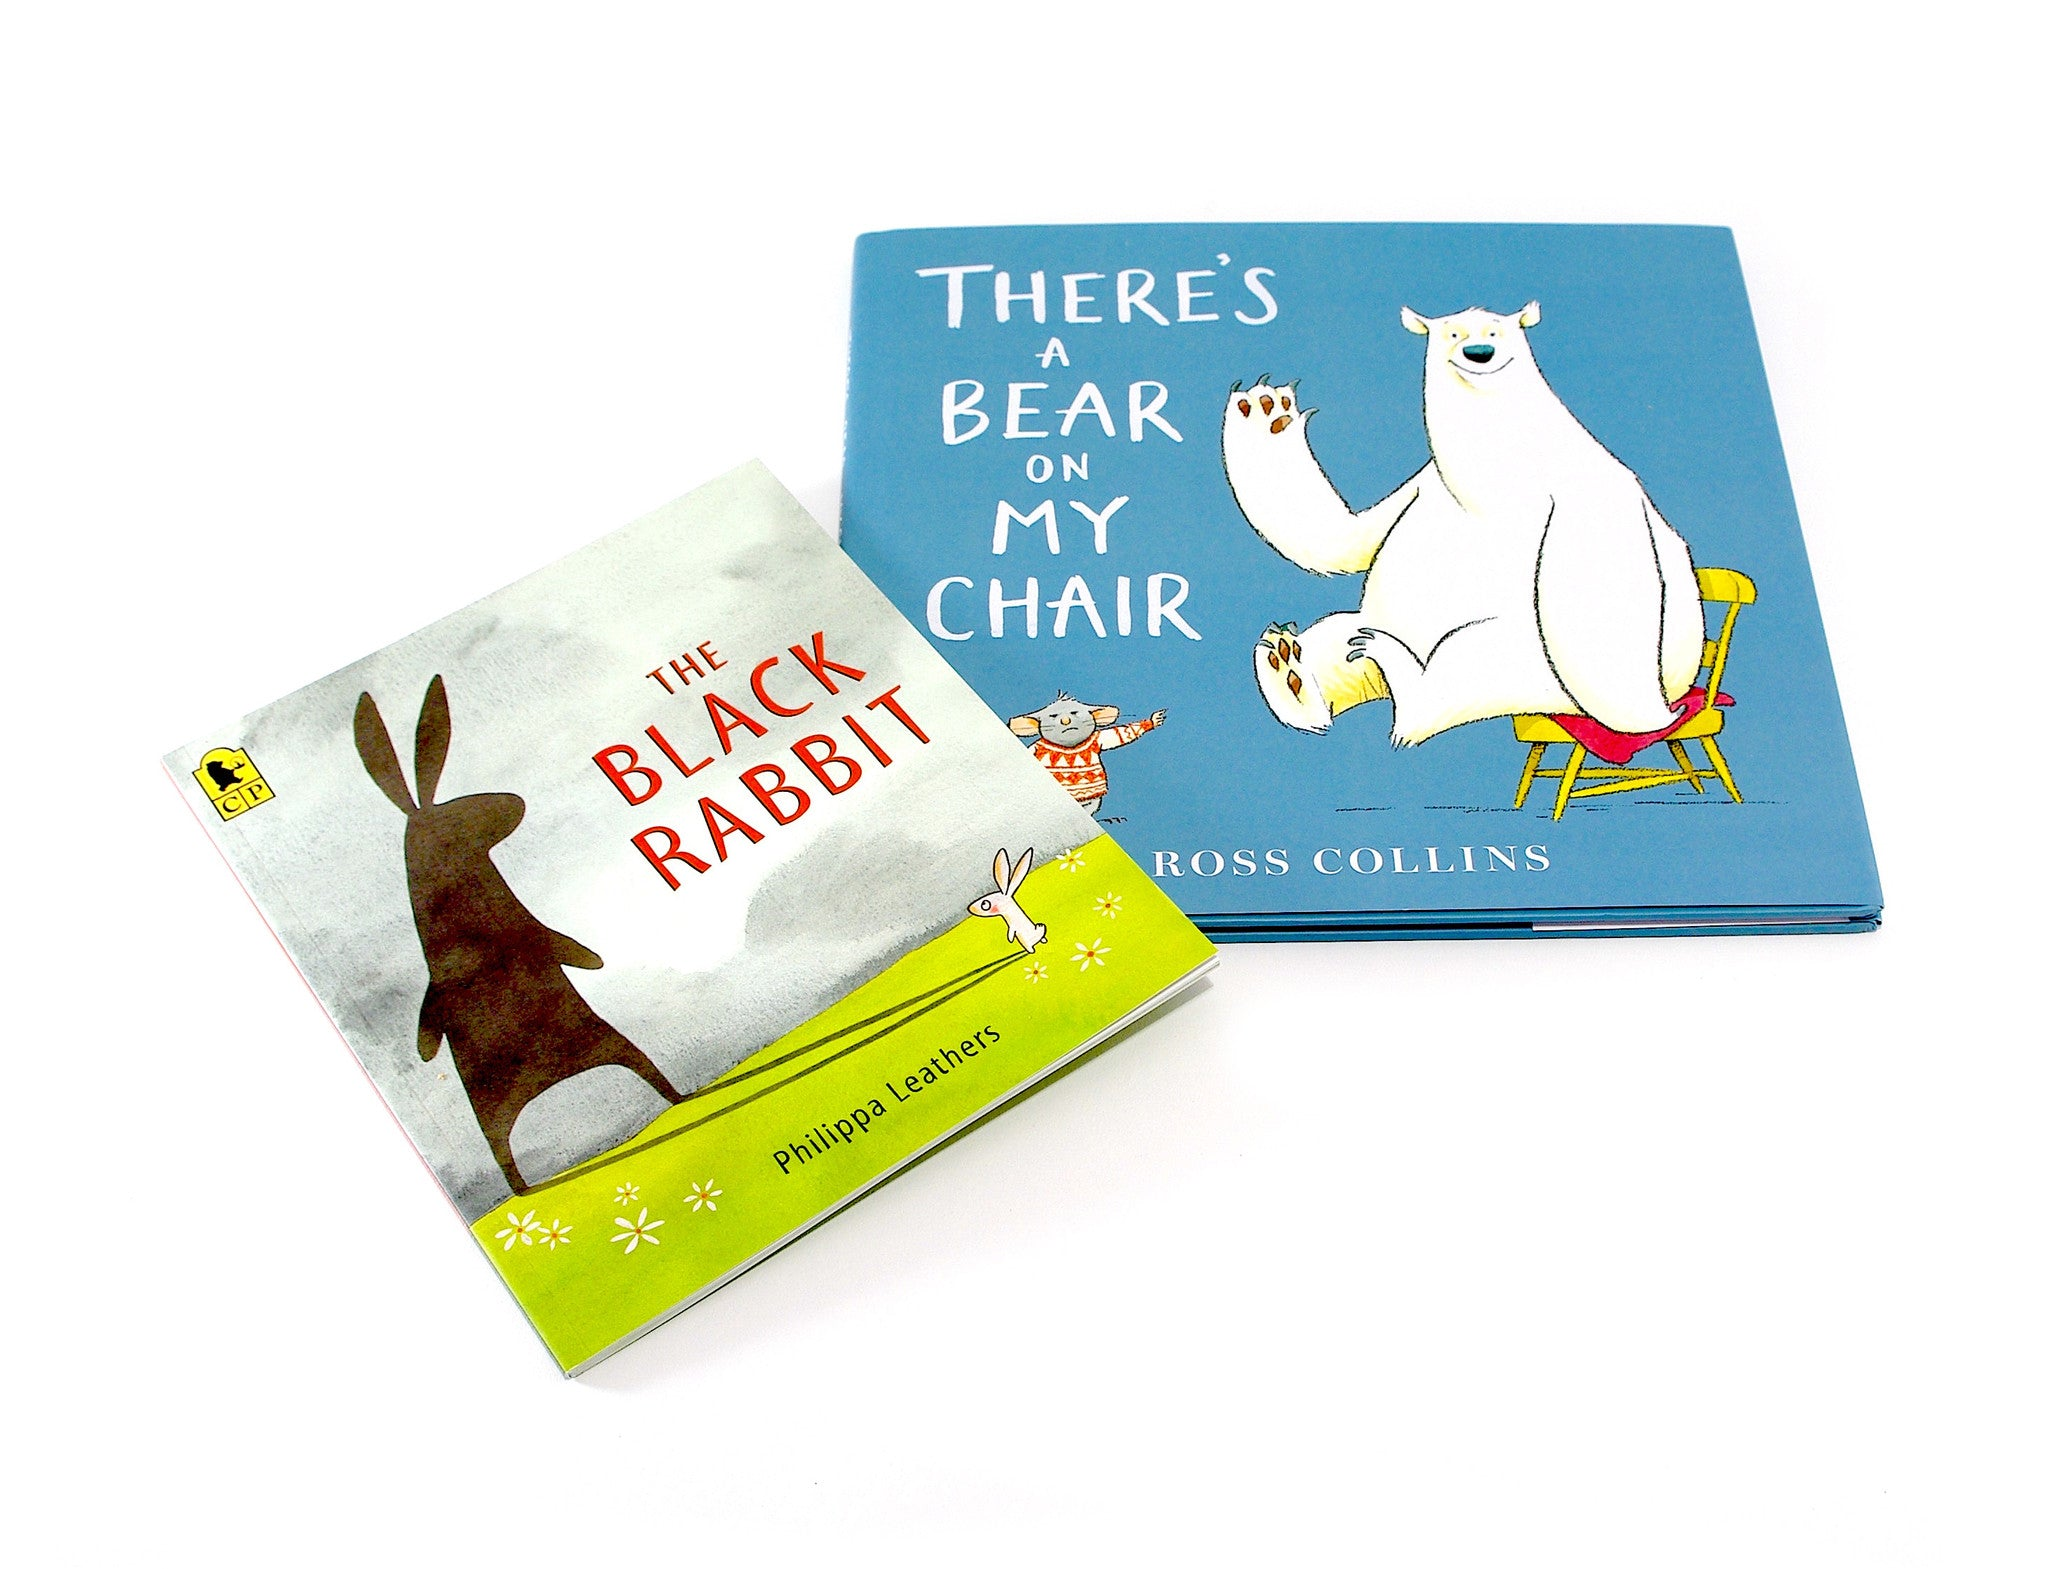 WHAT'S IN THE BOX: SEPTEMBER 2016 PICTURE BOOK